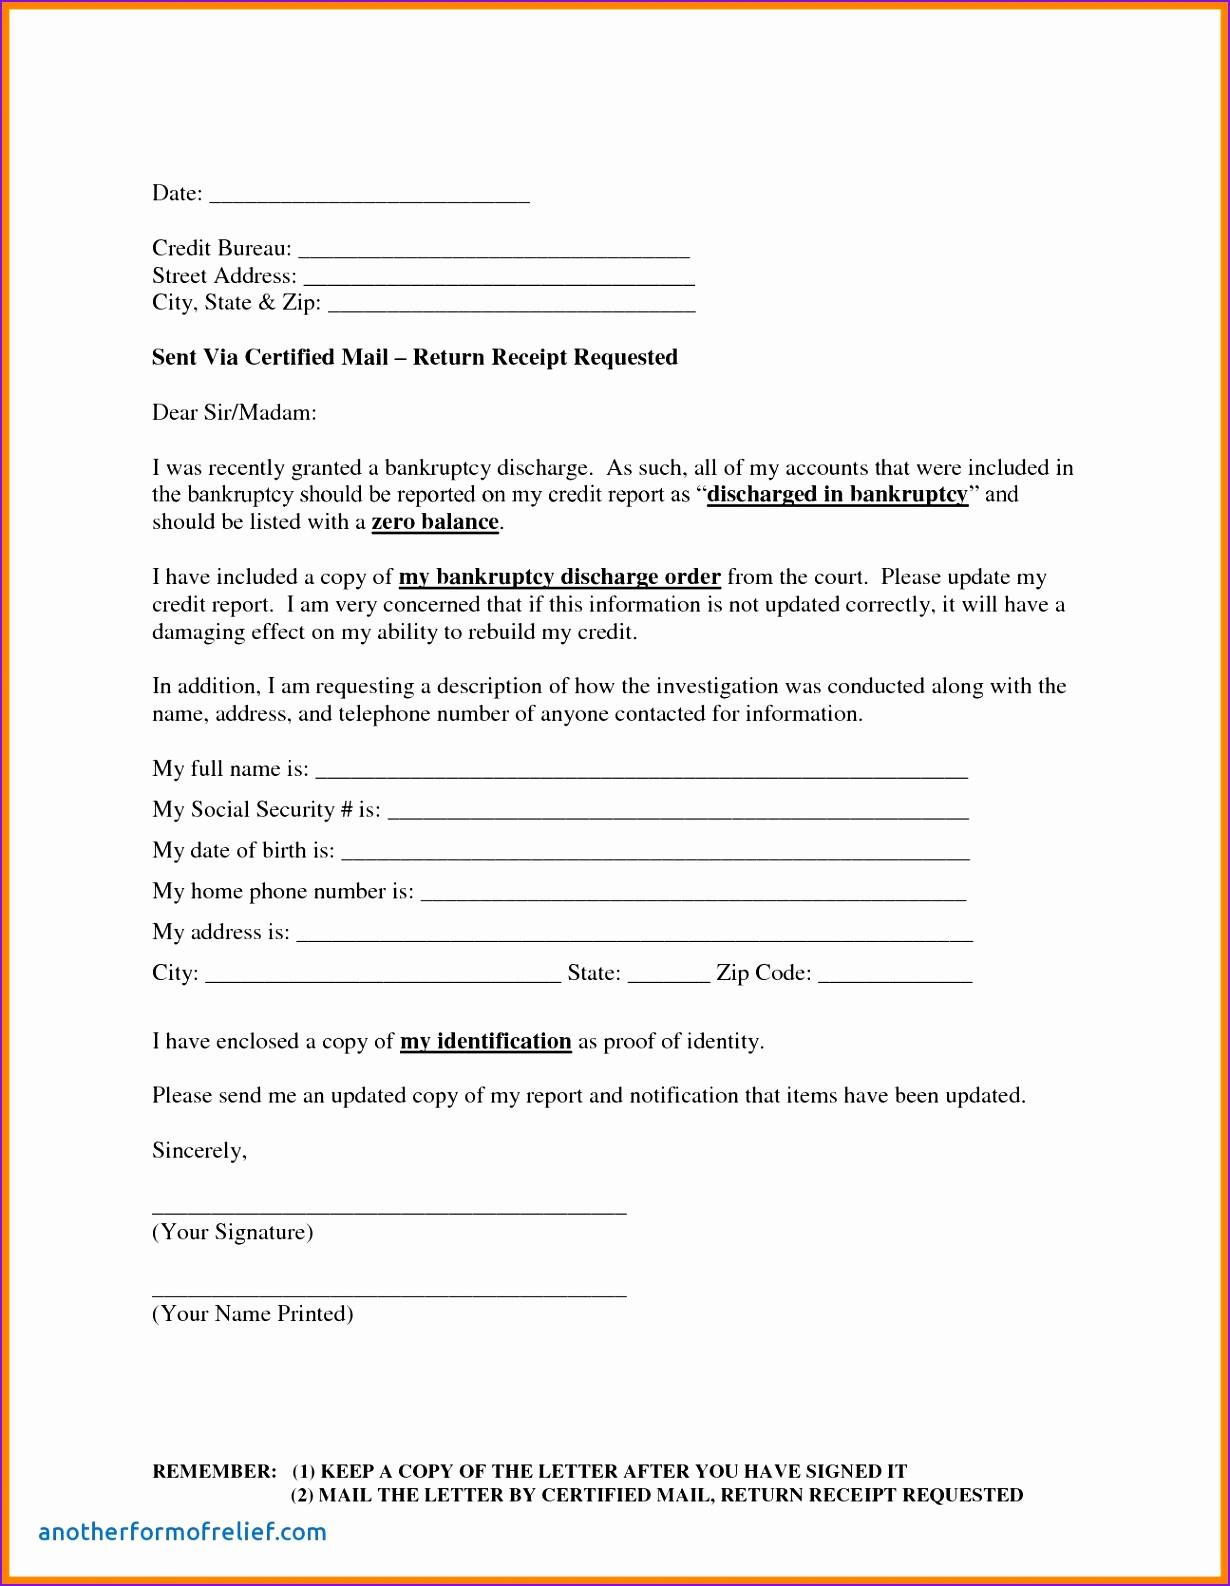 Template for Credit Report Dispute Letter - Credit Report Dispute Letter Template Fresh Credit Repair Letter